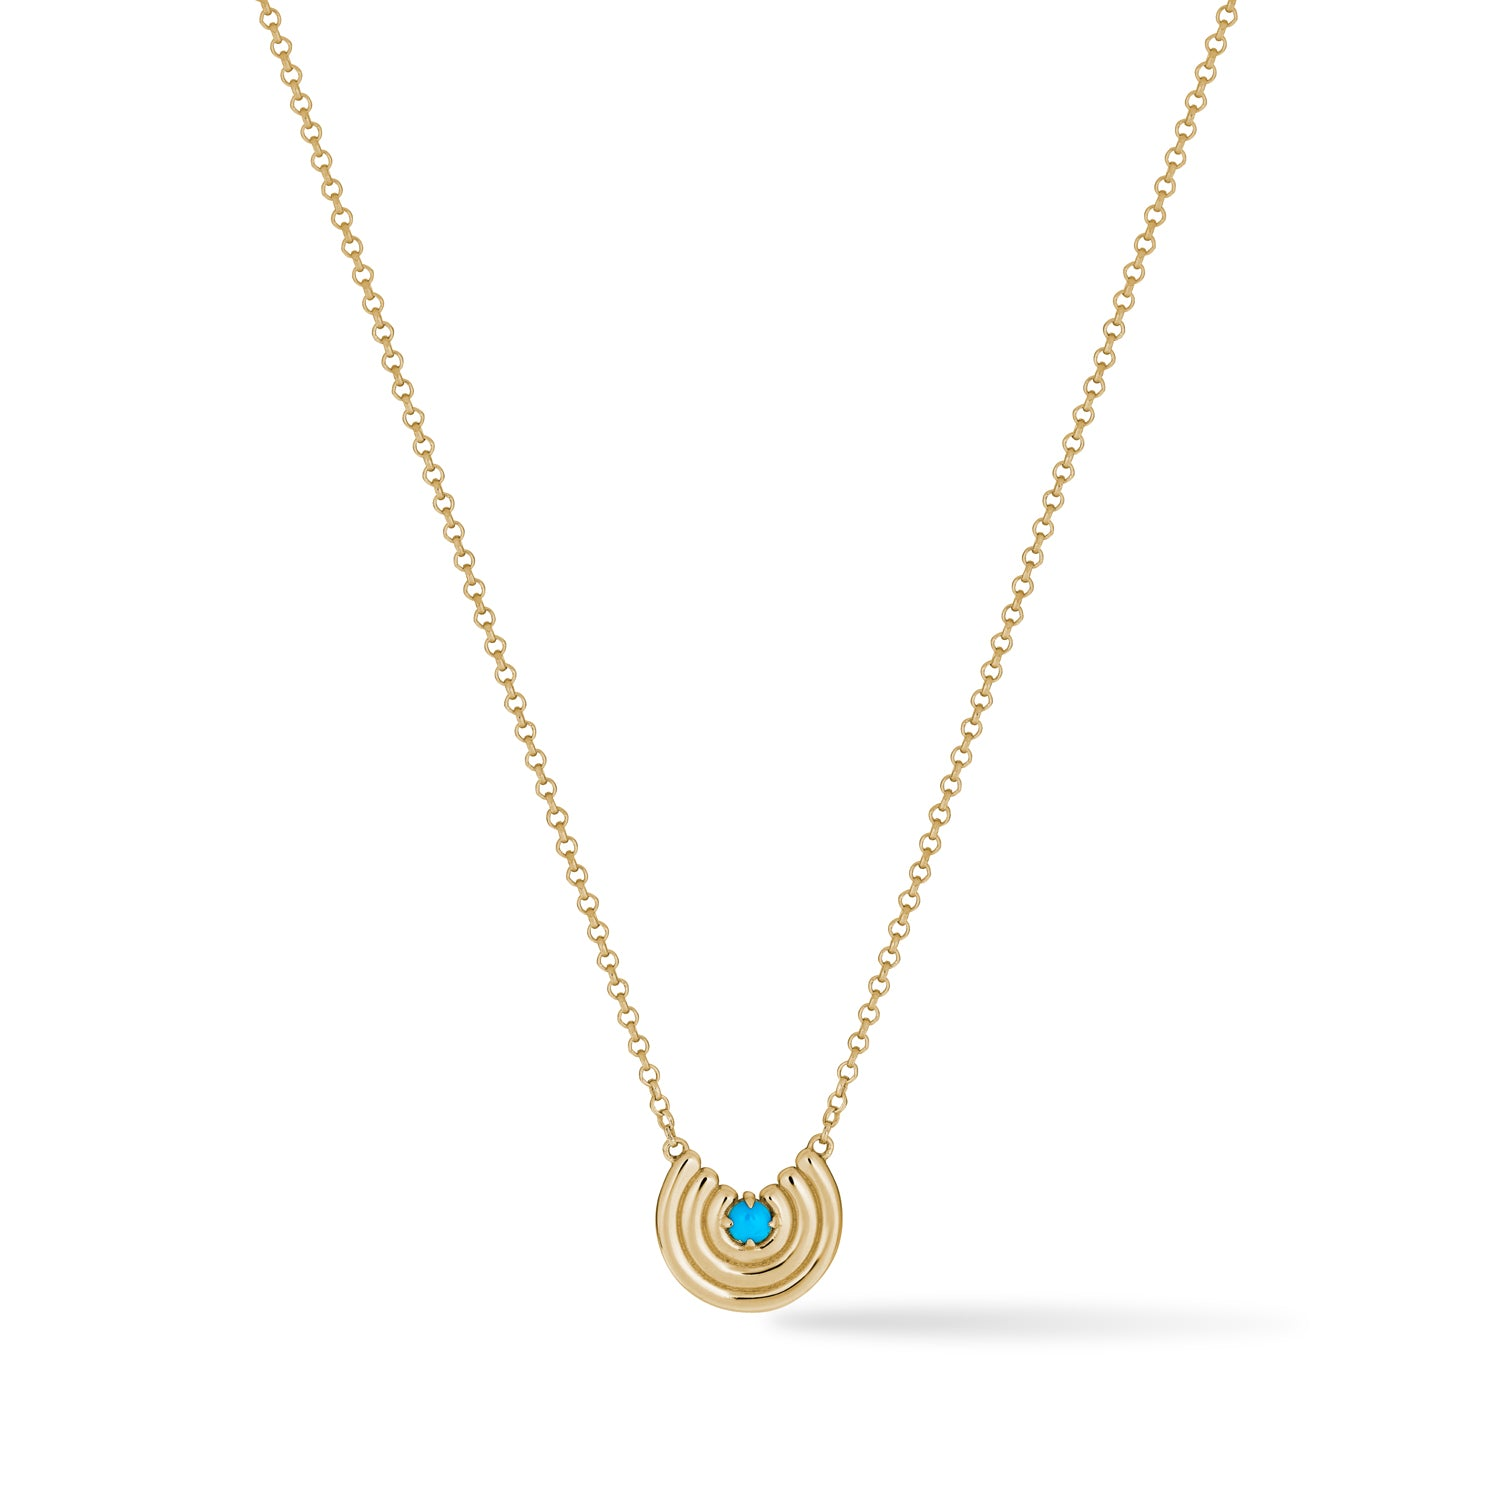 Petite Revival Necklace - Birthstone